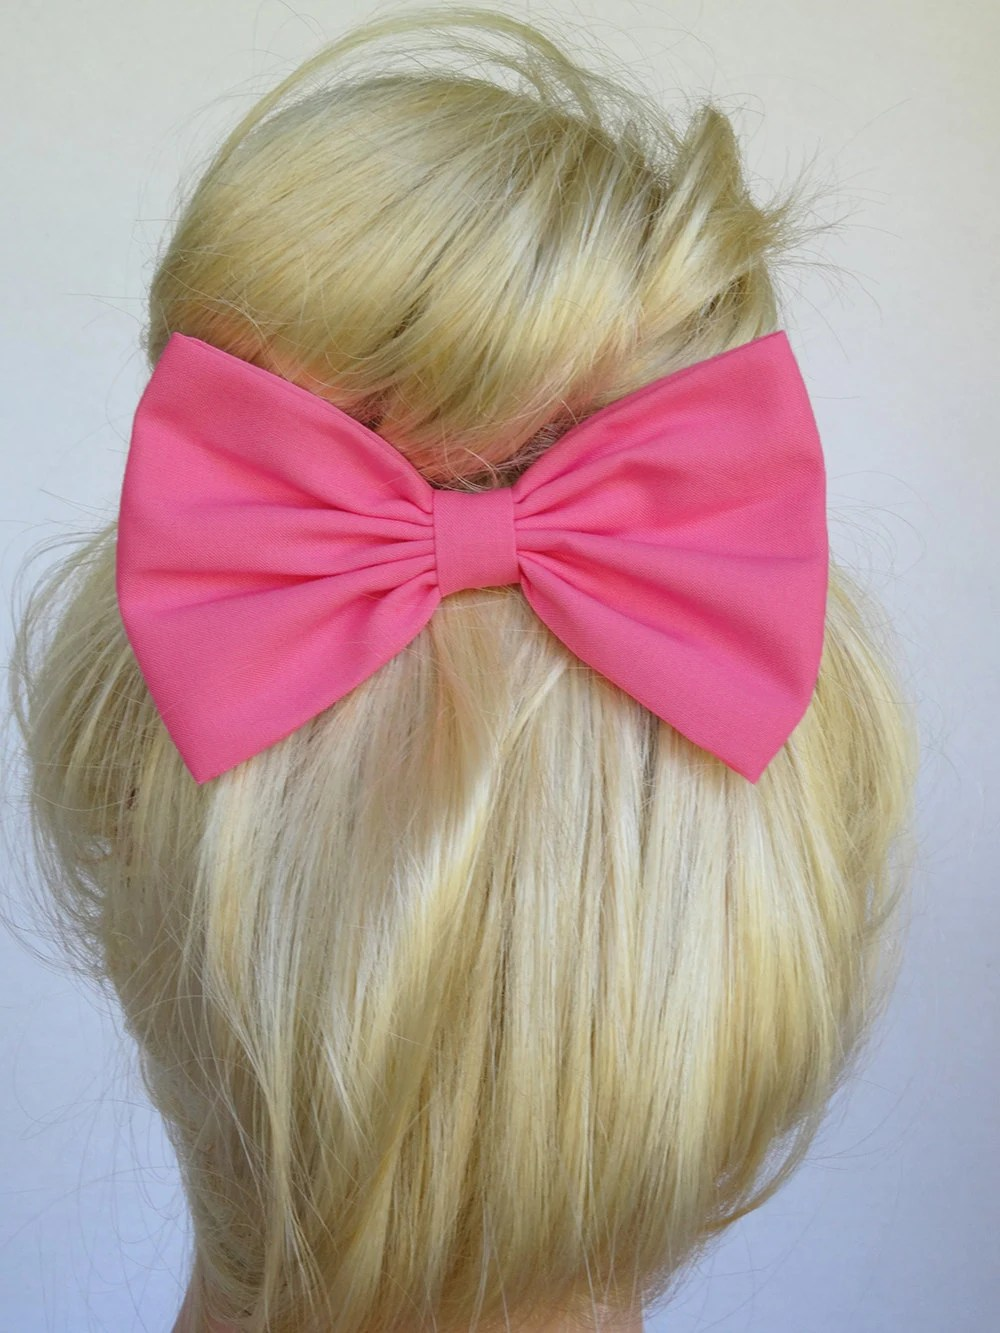 Hot Pink Hair Bow Clip Handmade Accessories Alligator Clips